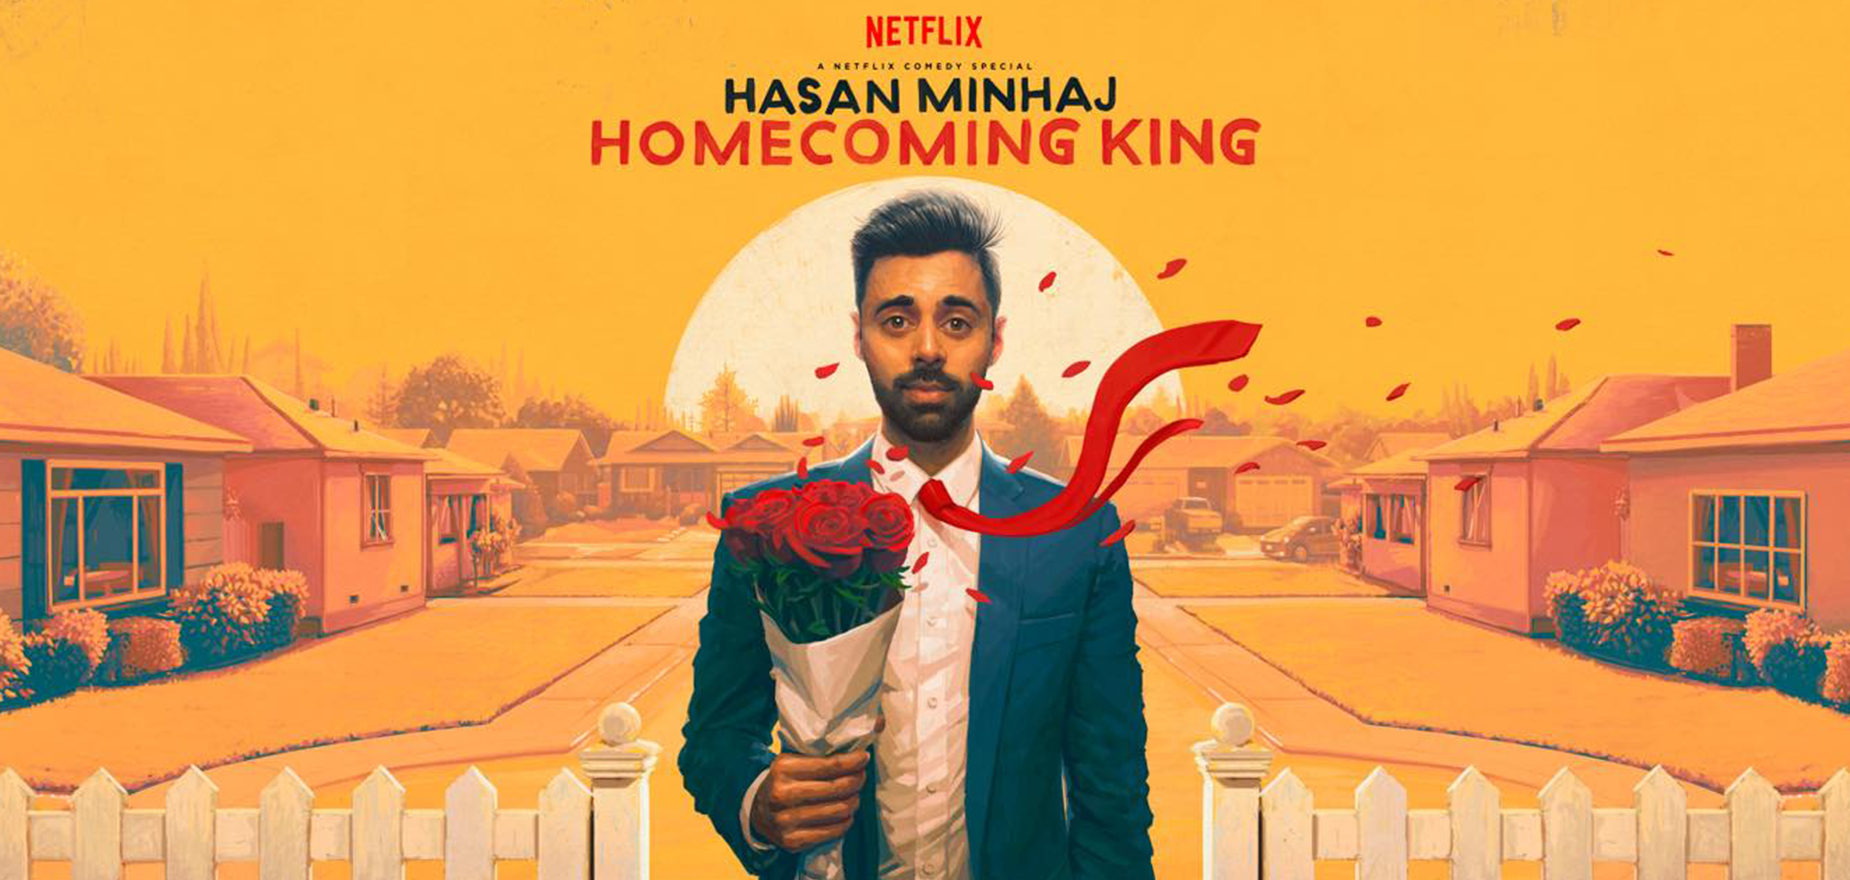 Hasan Minhaj: Homecoming King - Netflix, Art + Industry